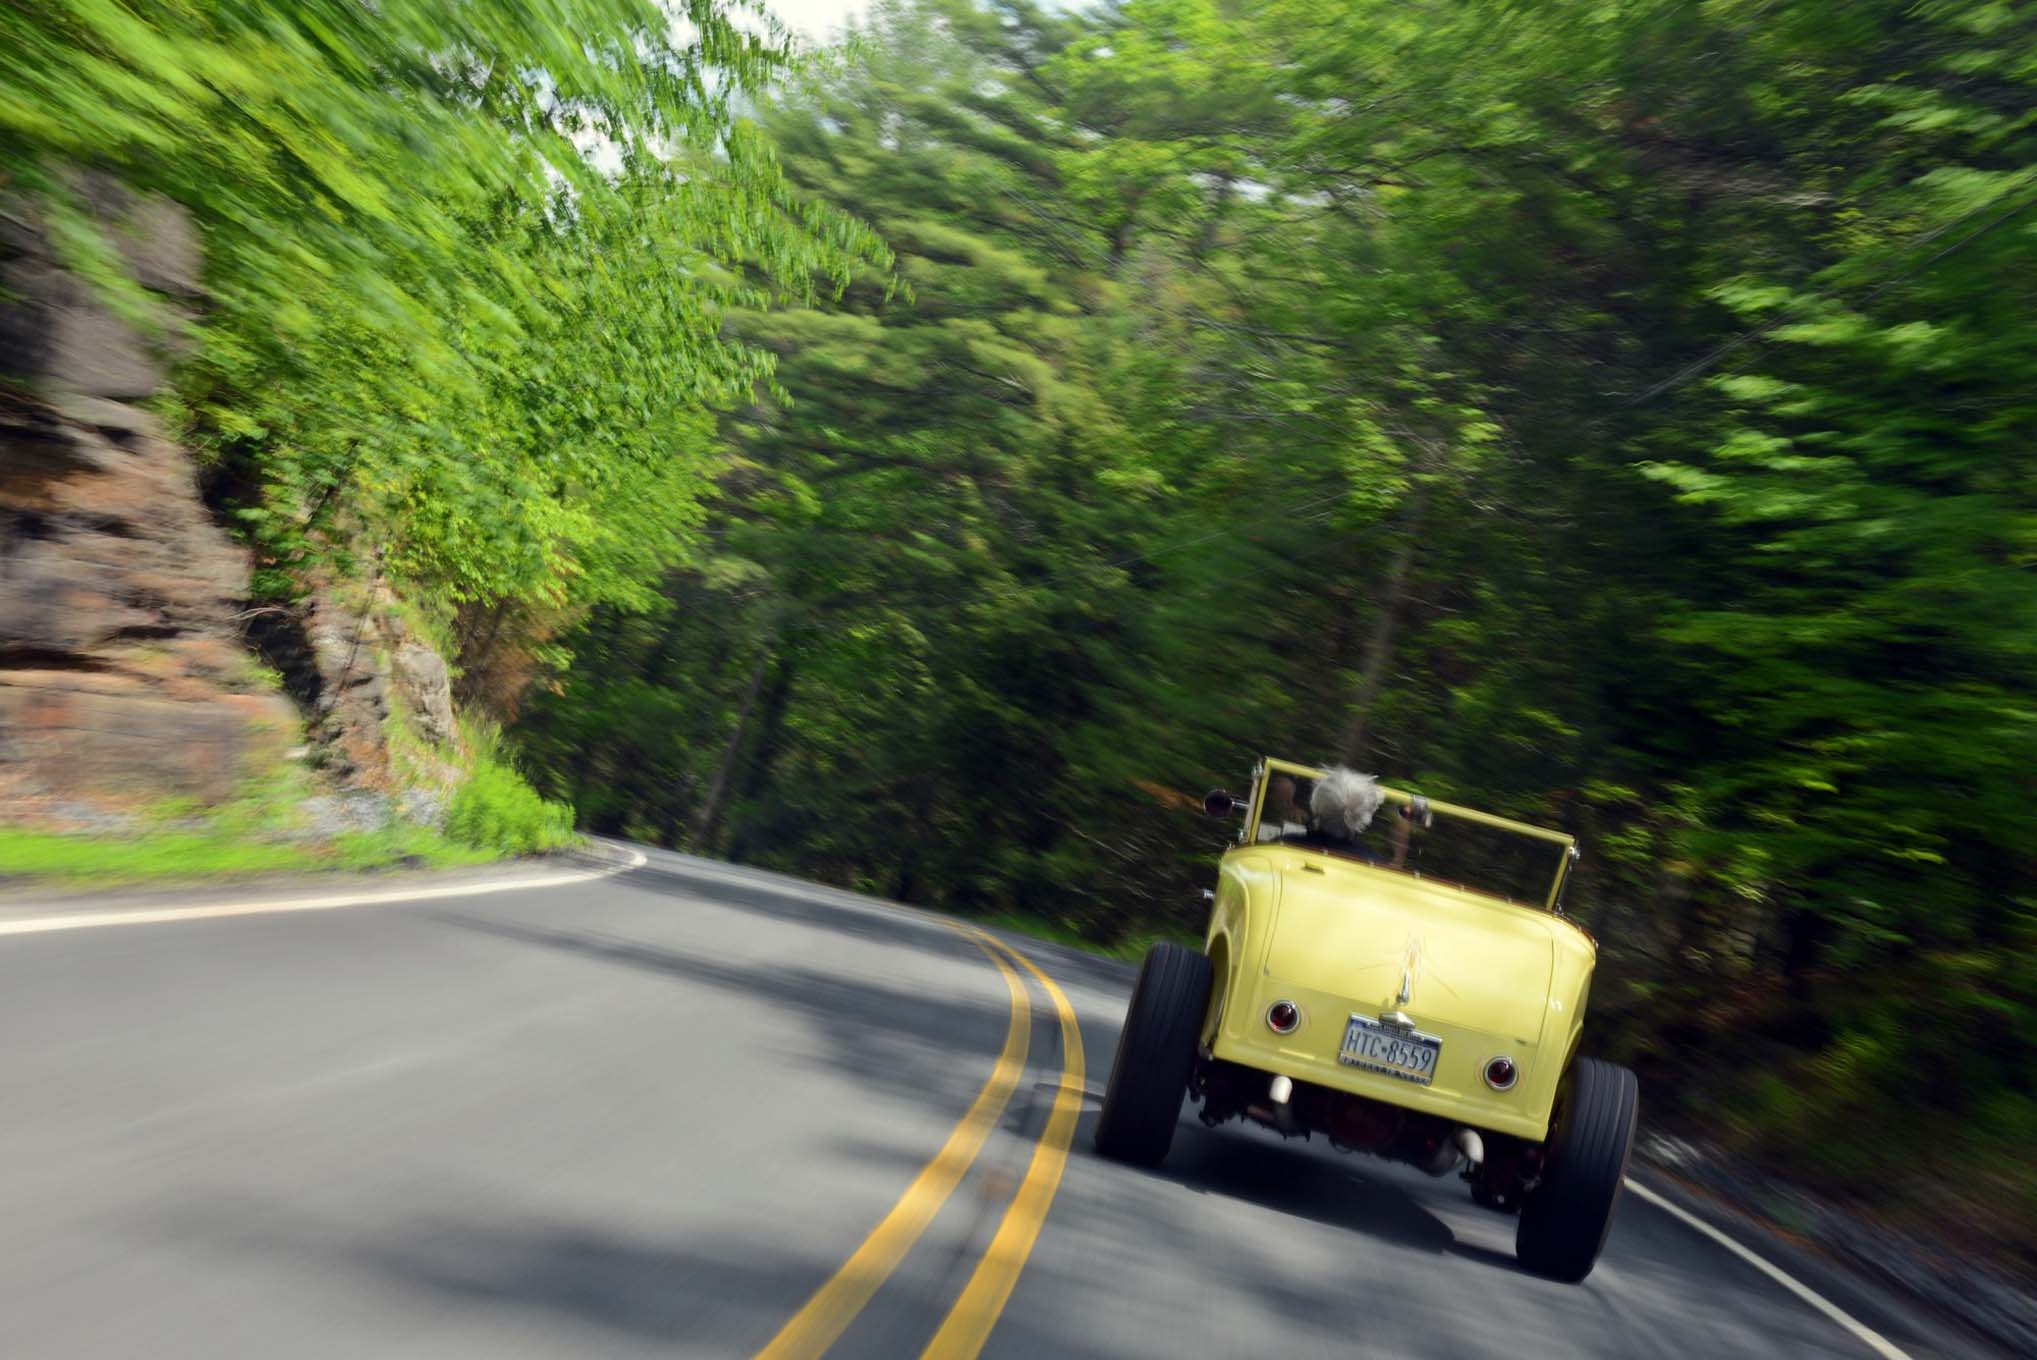 Since completed, Dave's 1930 roadster has logged more than 70,000 miles behind its 1955 Ford F-100 steering wheel, and both man and machine are still going strong.